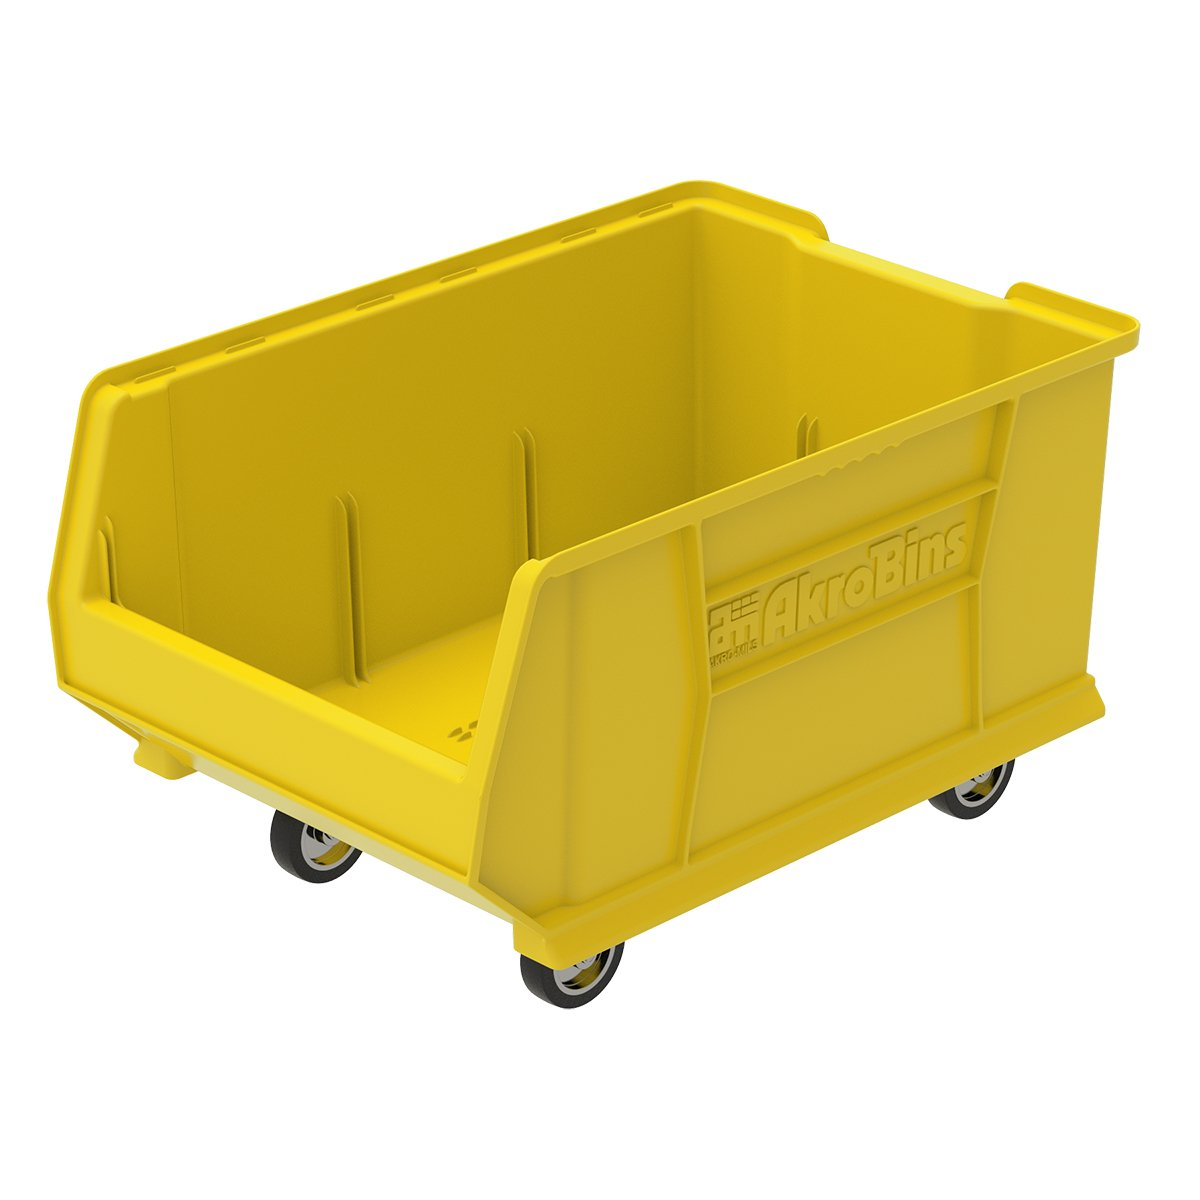 Akro-Mils 30288 Mobile Super Size Plastic Stacking Storage Akro Bin, 24-Inch x 16-Inch x 11-Inch, Yellow